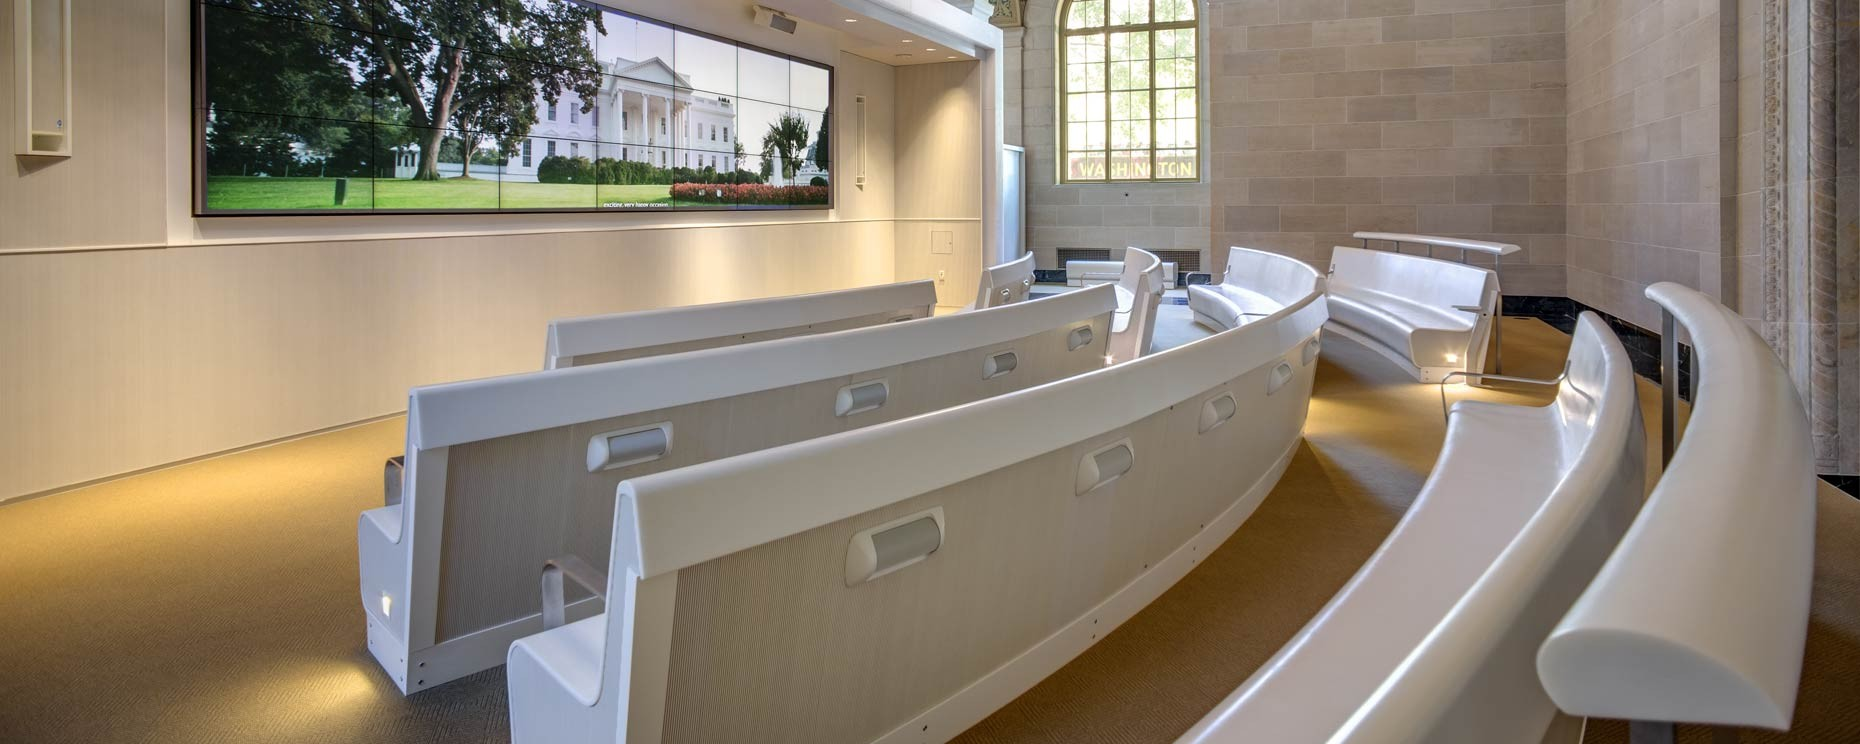 thermoformed-benches-white-house-visitor-center